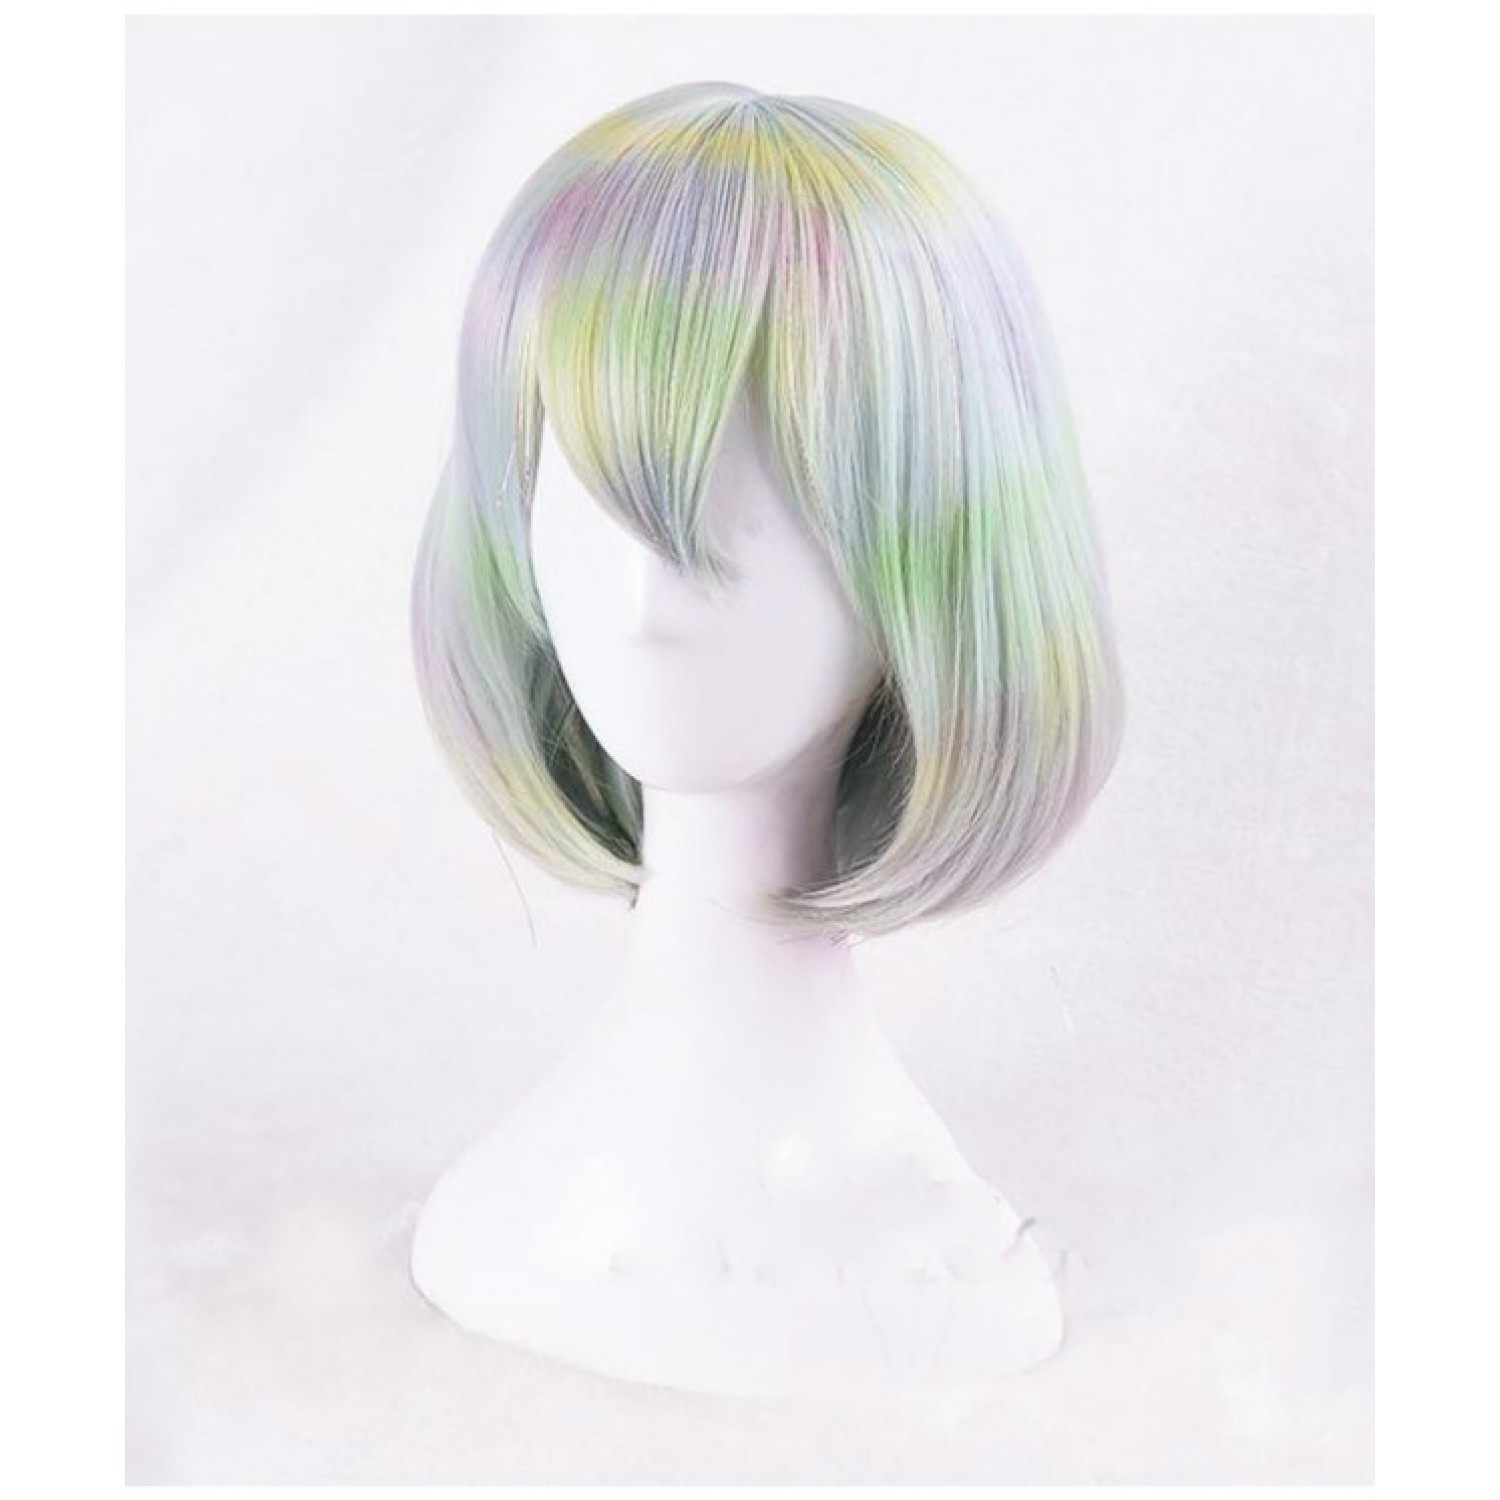 Land of the Lustrous Diamond Short Straight Bob Cosplay Wig